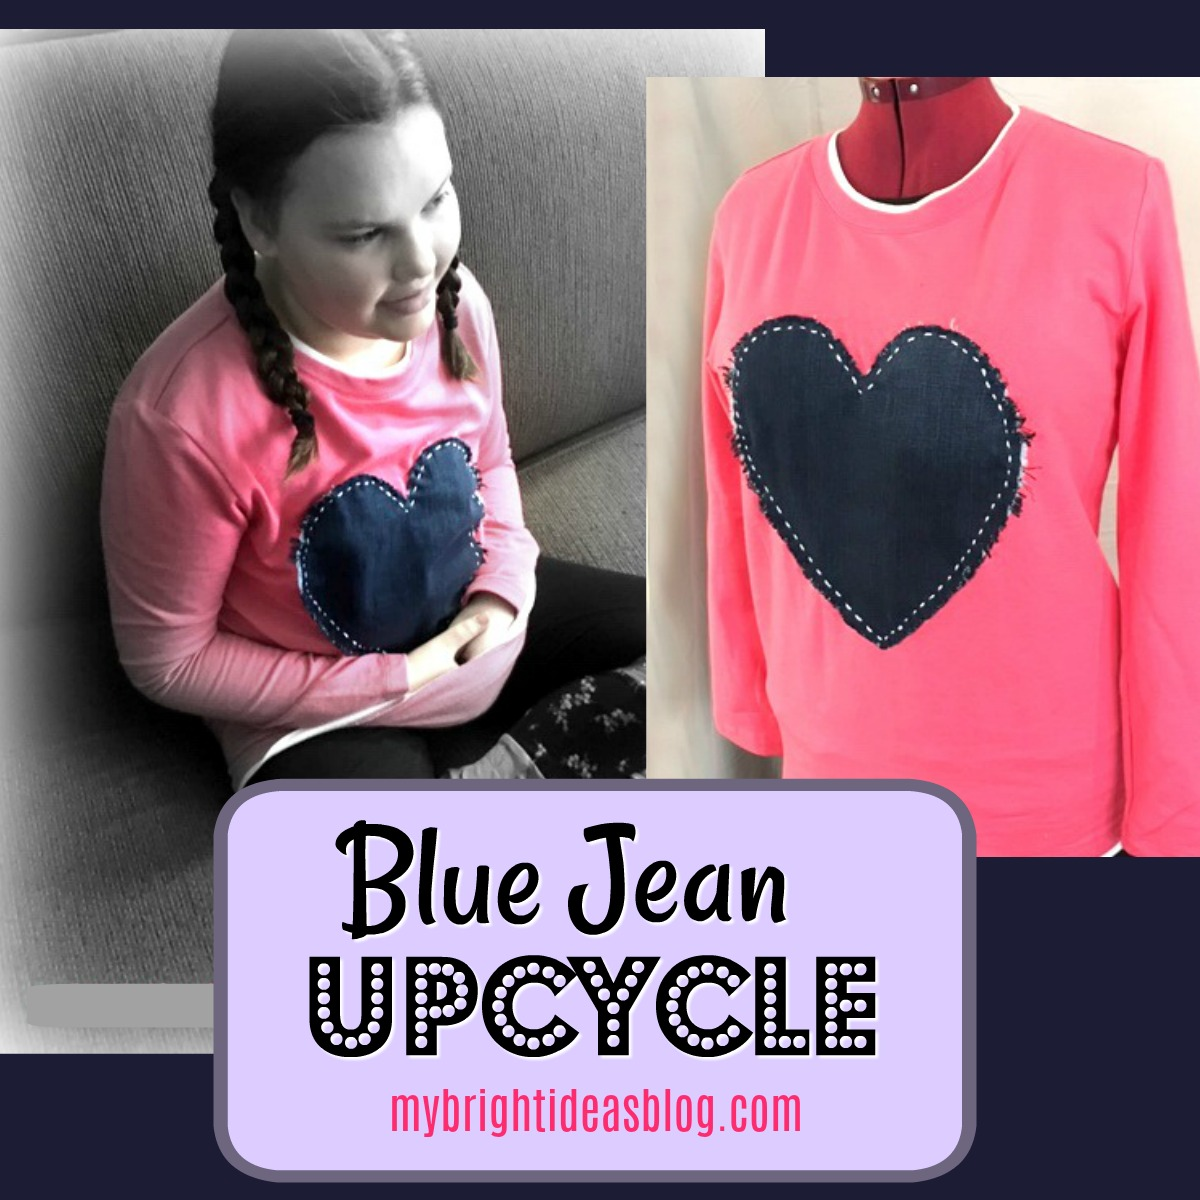 Upcycle Jeans by adding a huge denim heart to a t-shirt. She's loved! mybrightideasblog.com